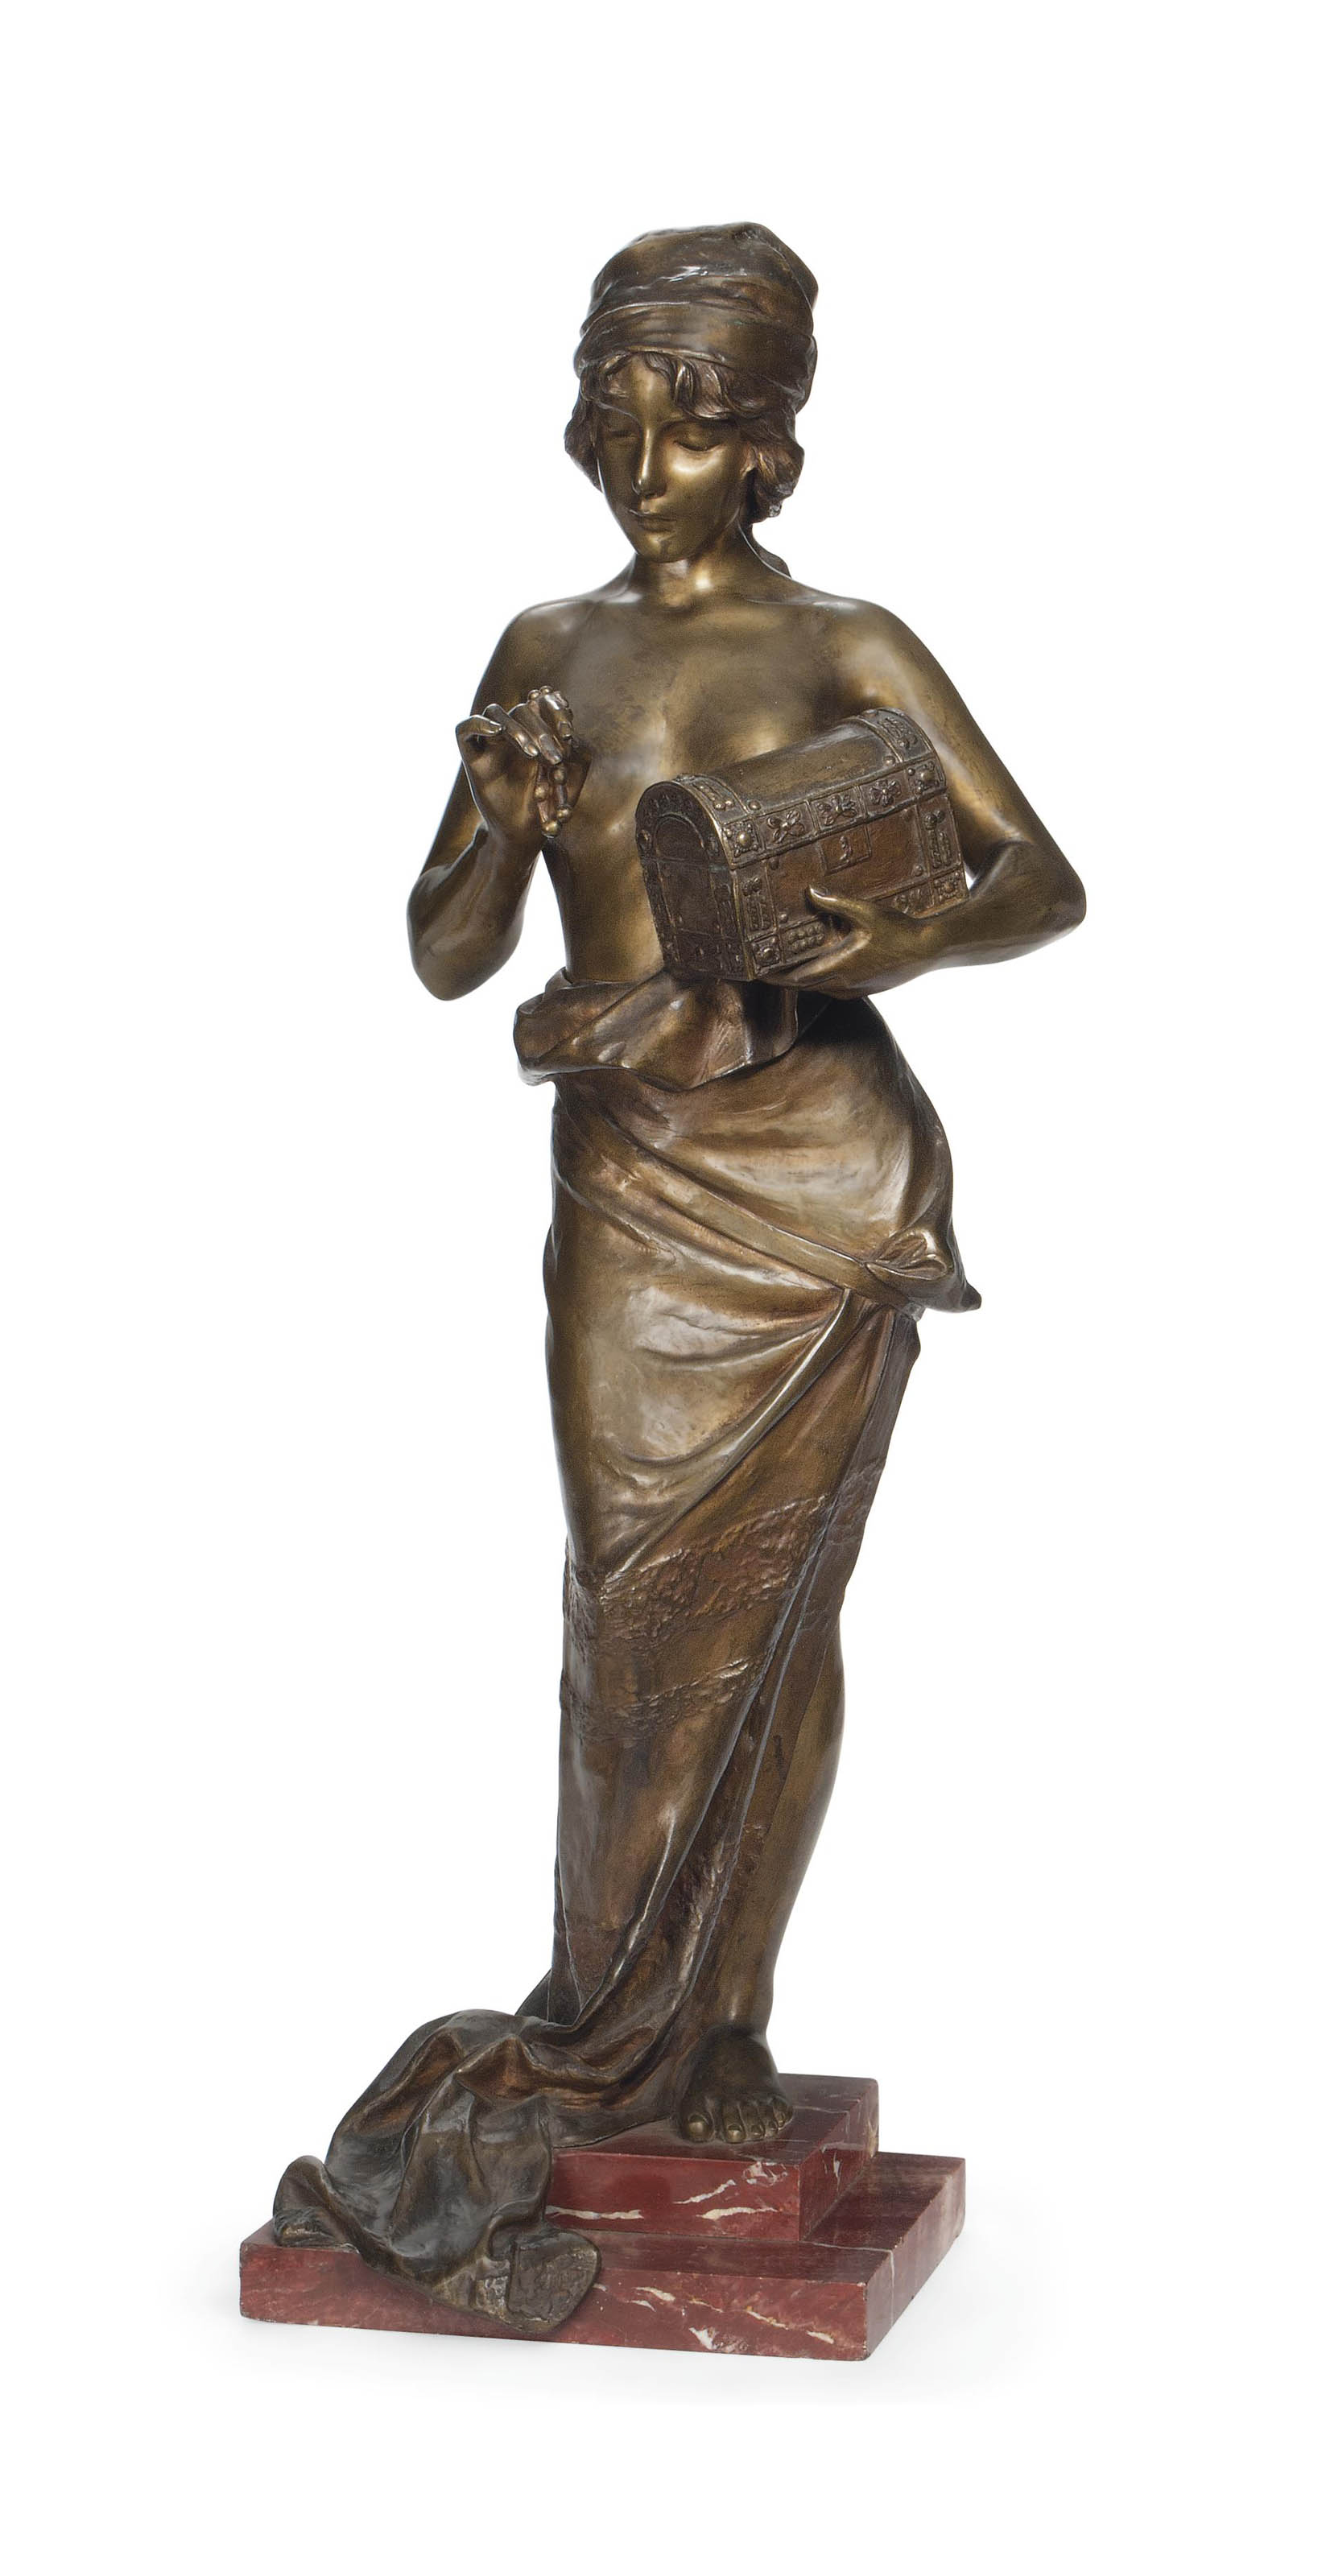 A FRENCH BRONZE FIGURE OF PANDORA